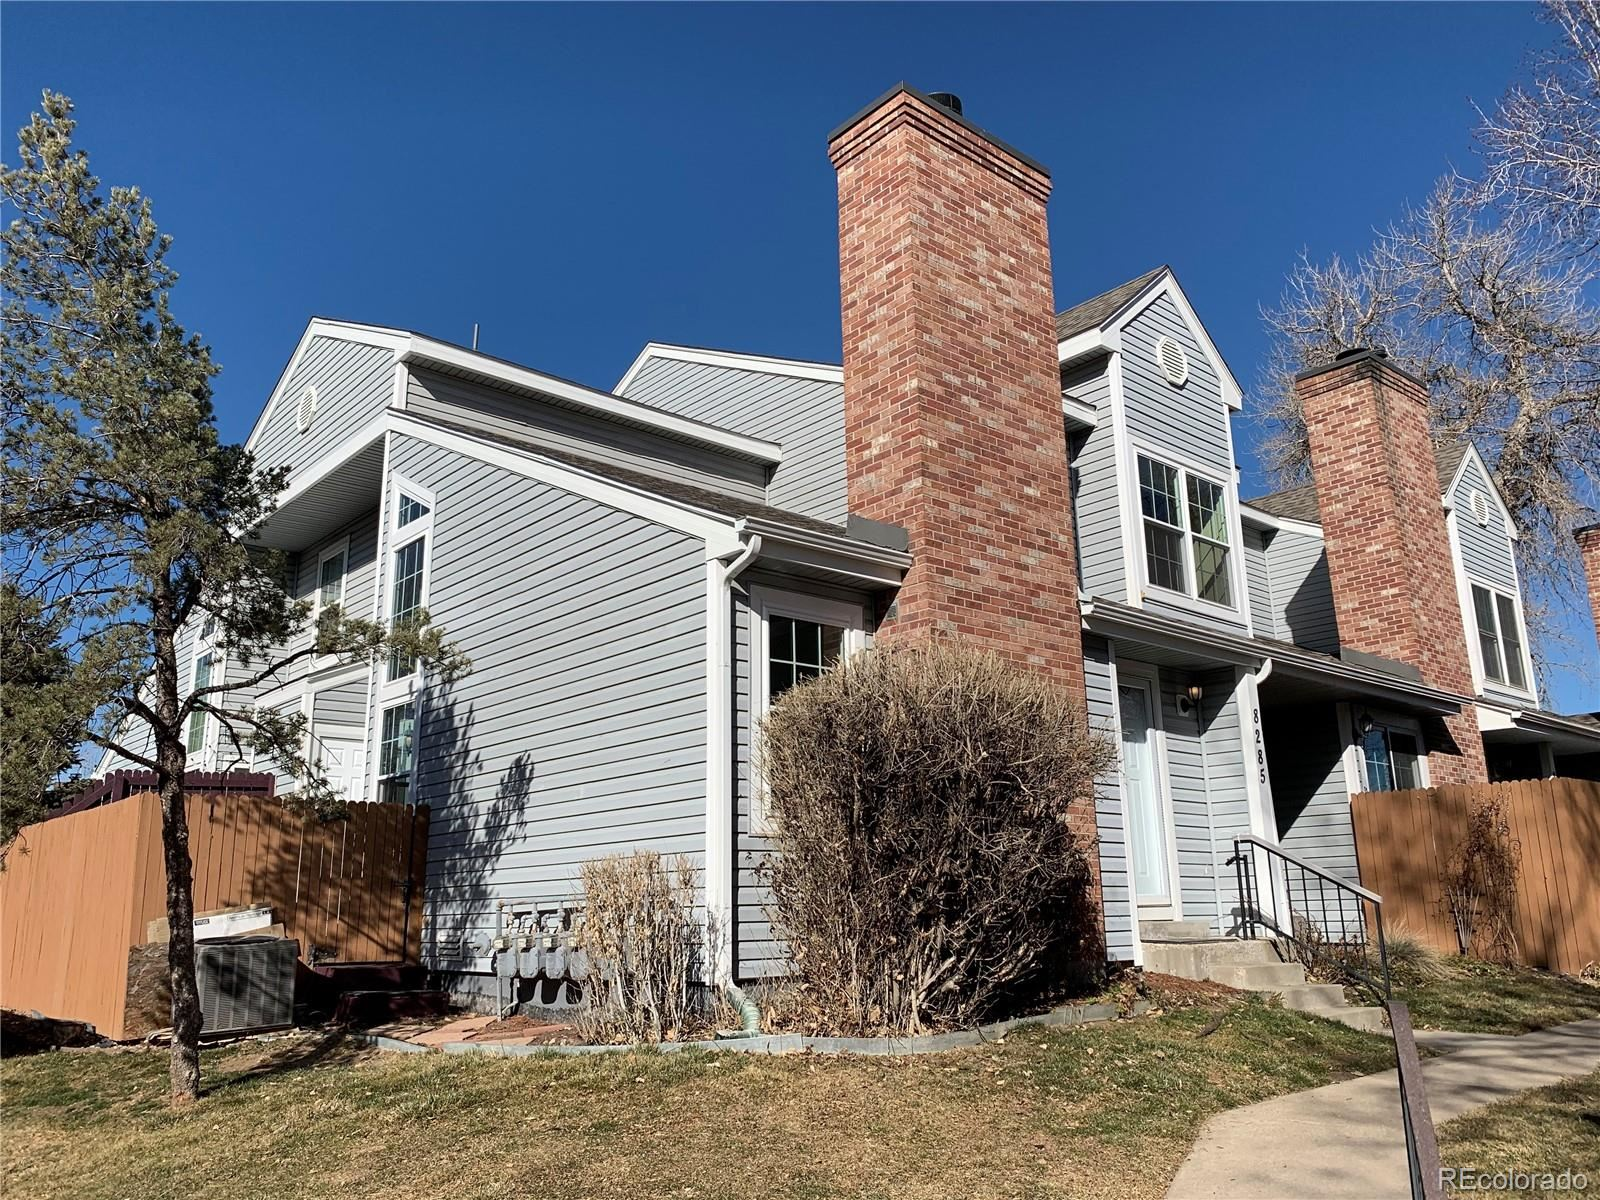 8285 W 90th Place, Westminster, CO 80021 - #: 5129261